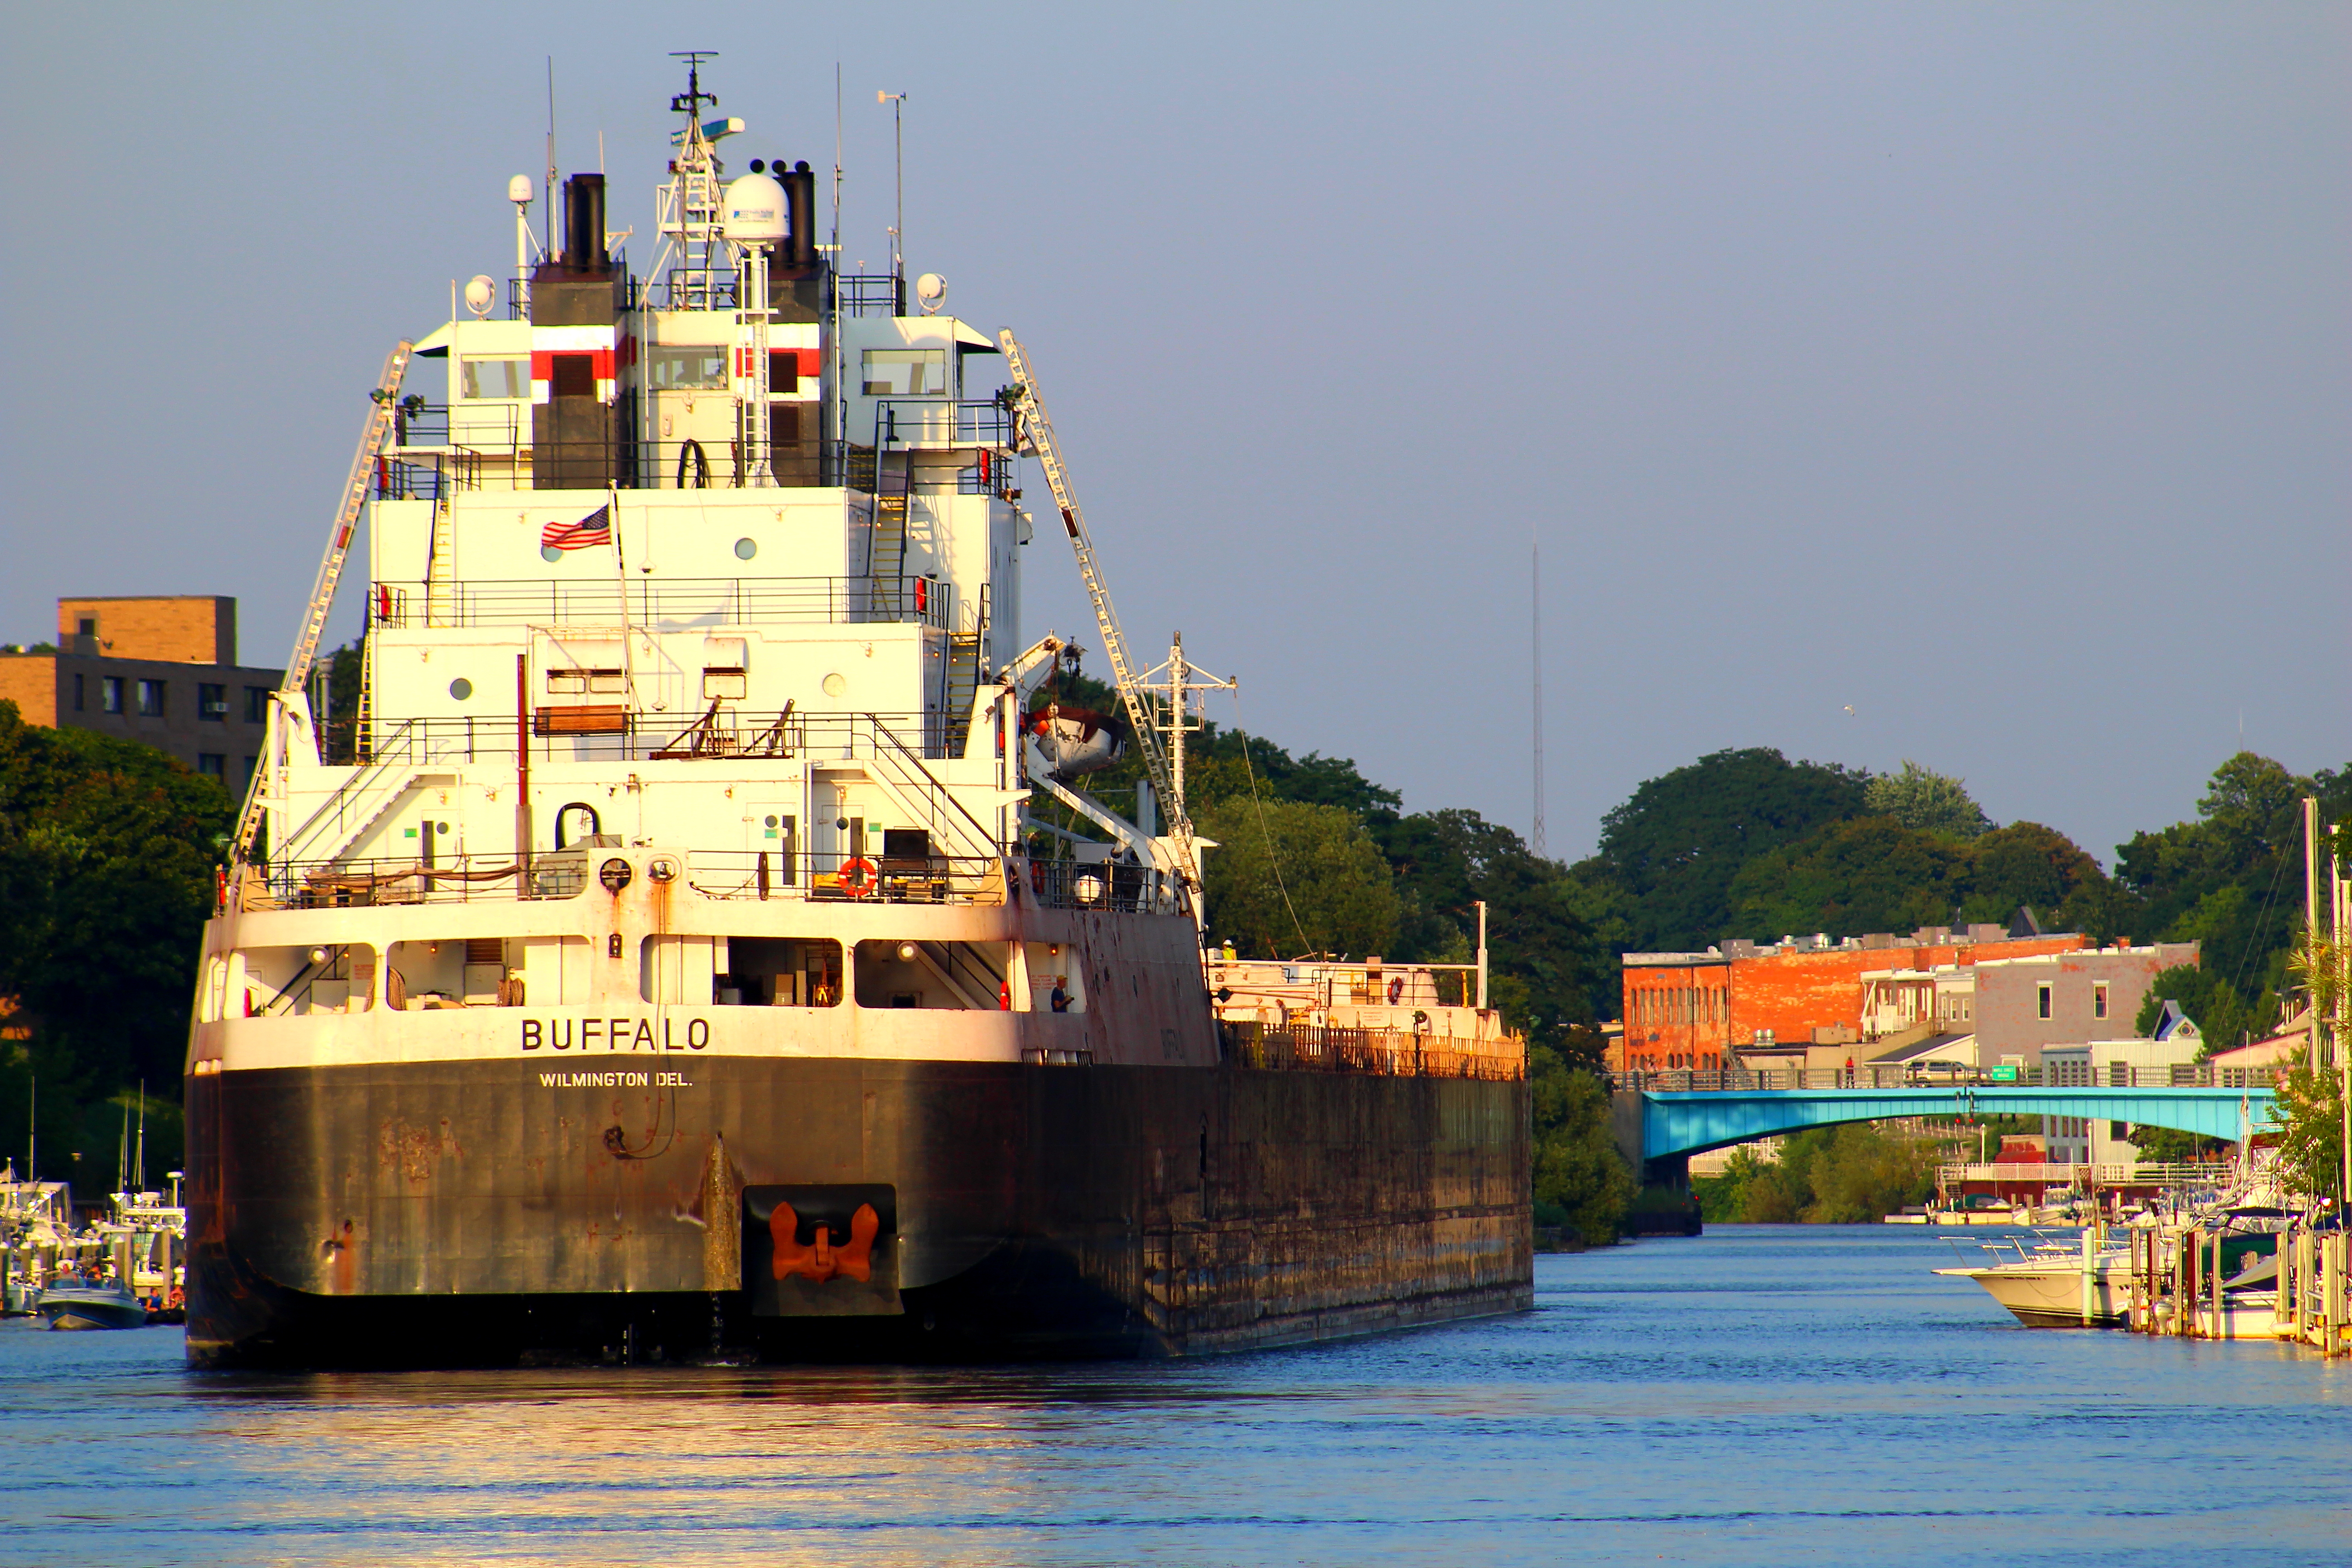 Freighter Buffalo in the Manistee River Channel with the Maple Street Bridge in the background